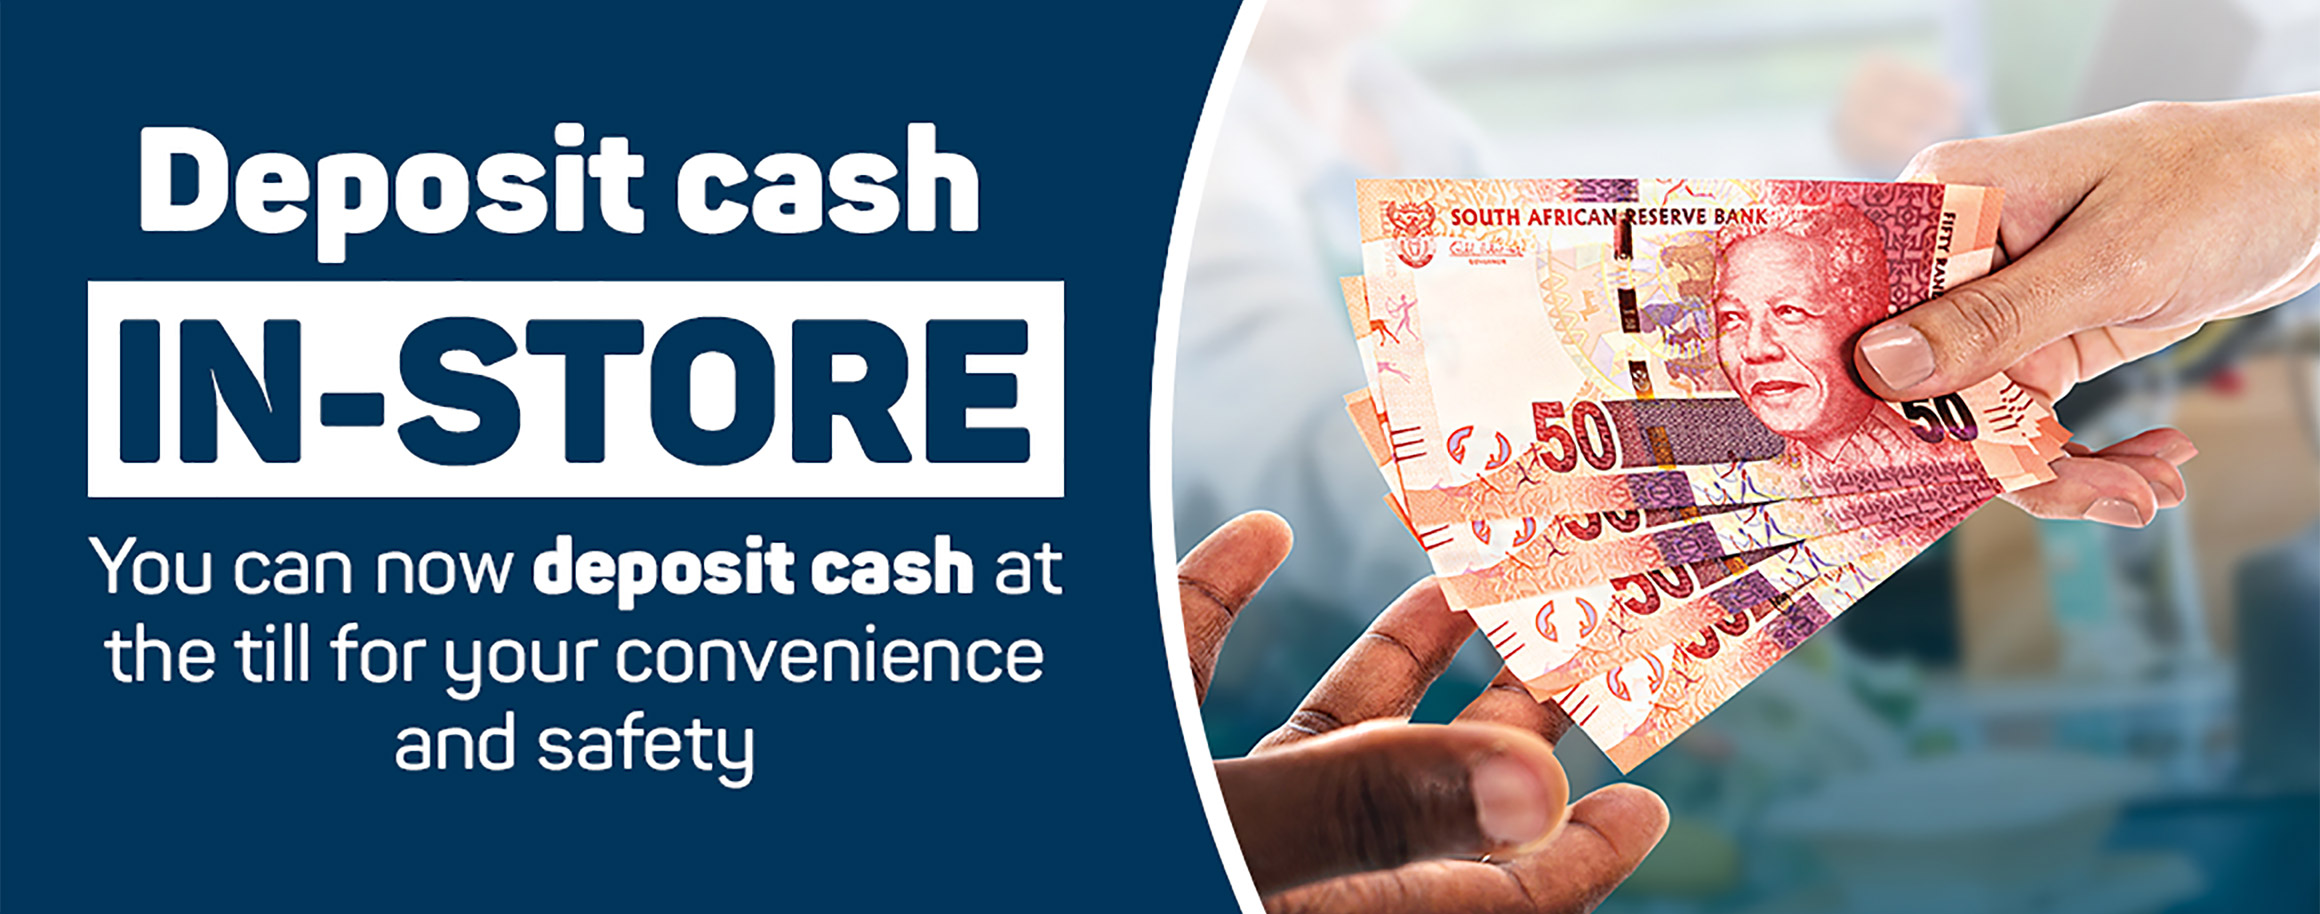 Deposit cash in-store. You can now deposit cash at the till for your convenience and safety